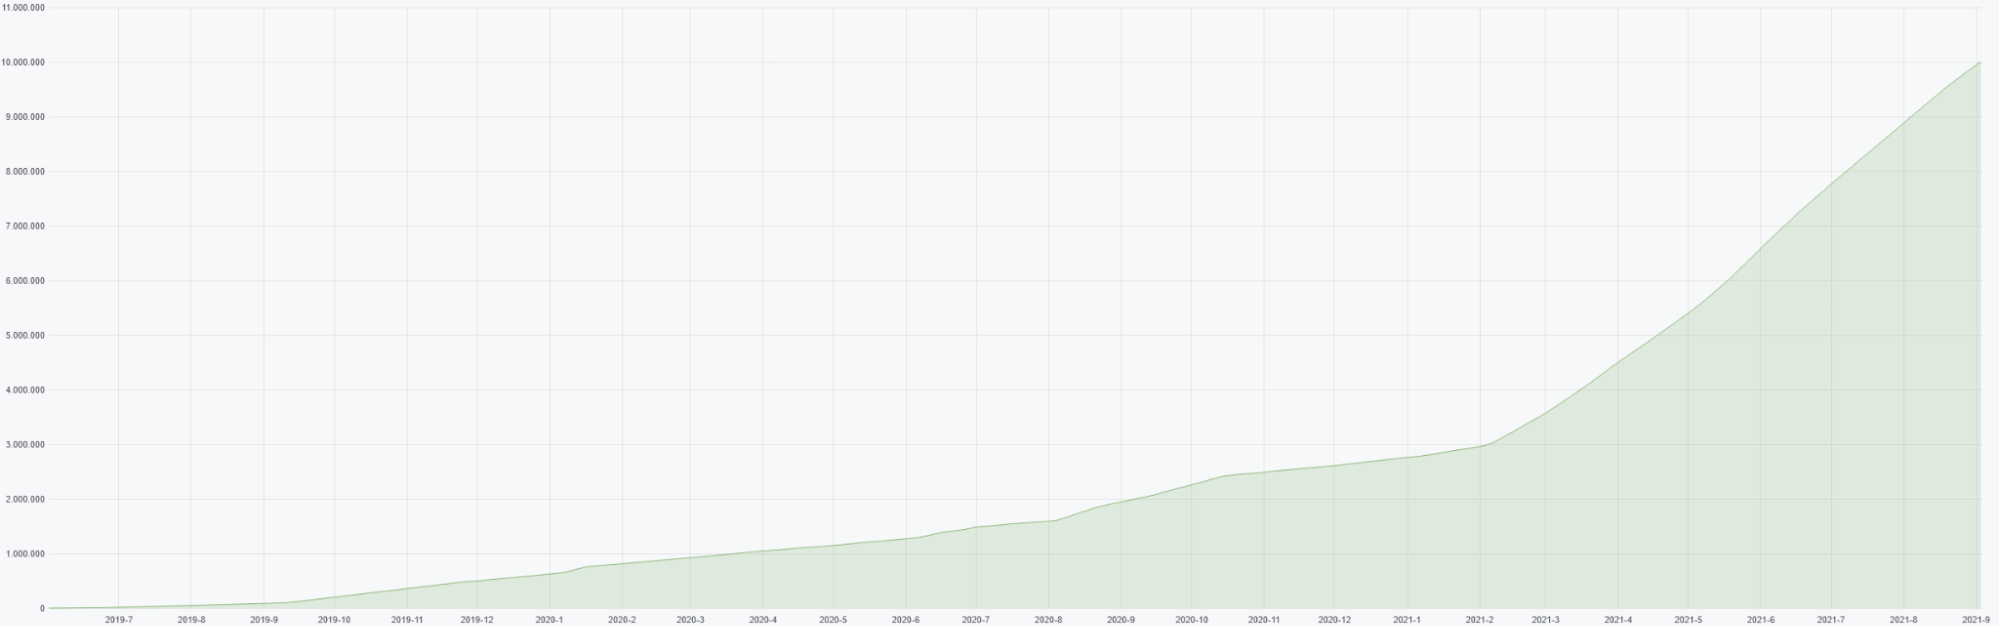 total number of downloads during two years